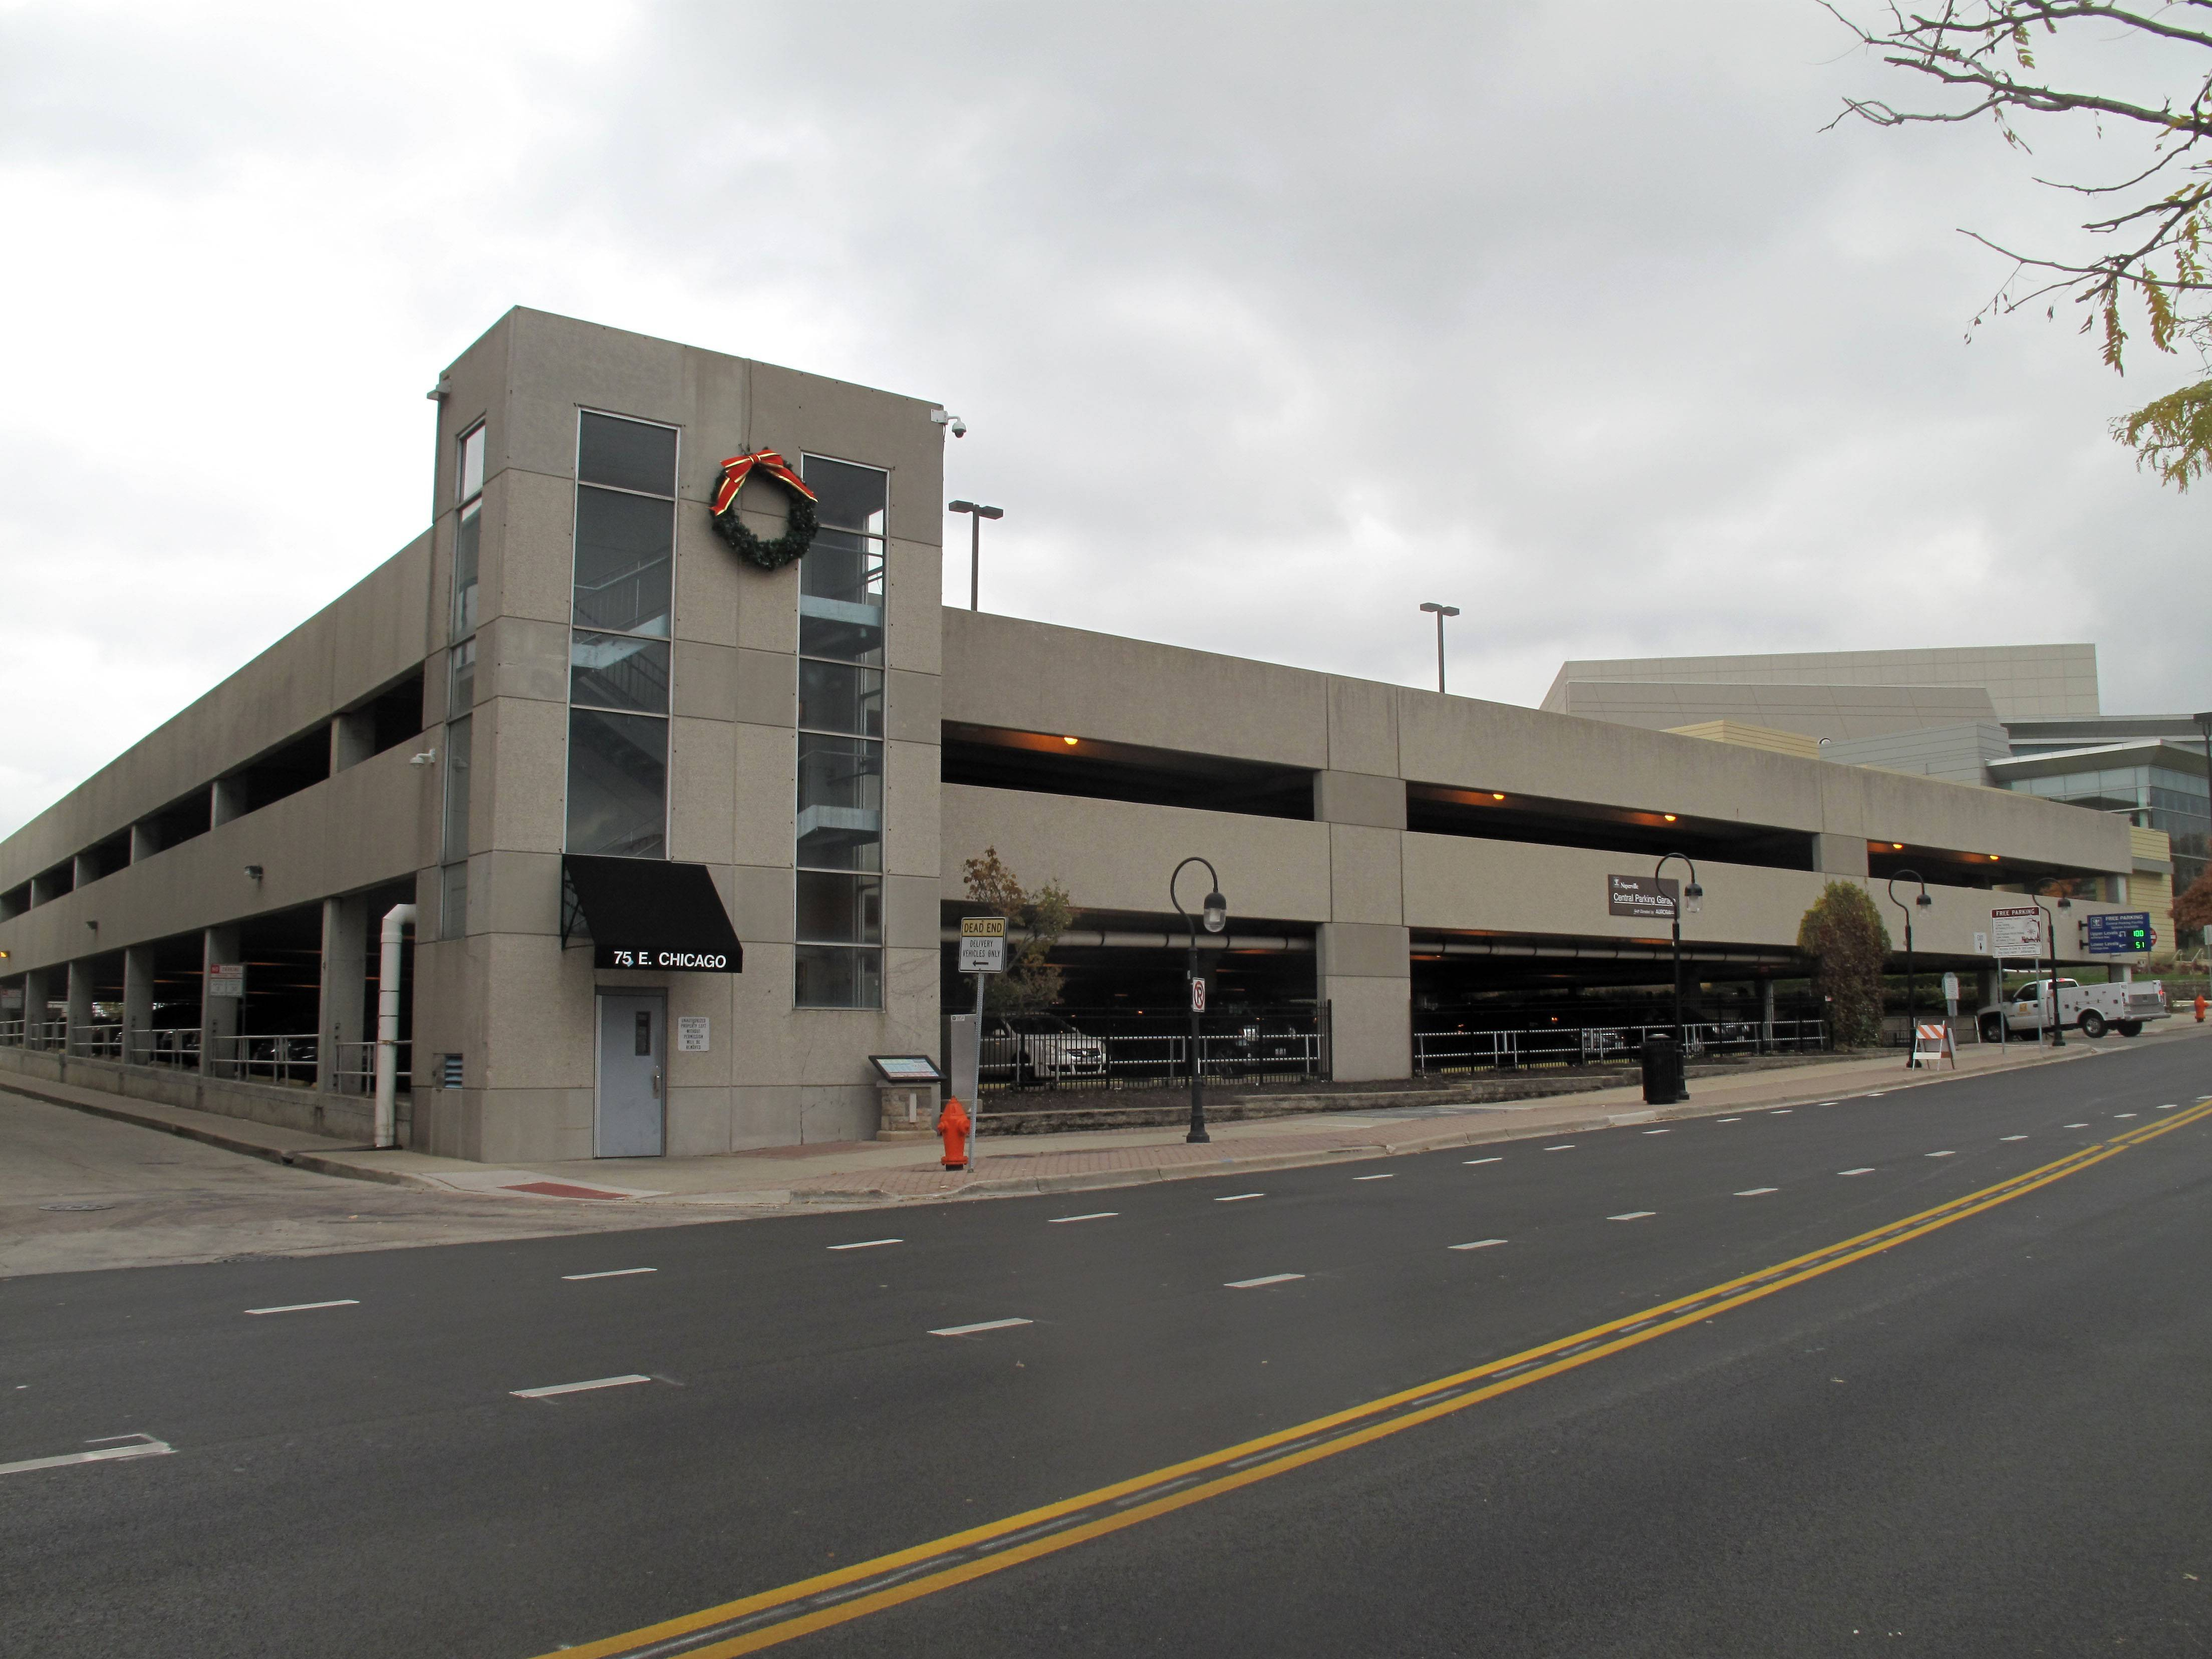 Naperville cutting capital spending by $2.7 million